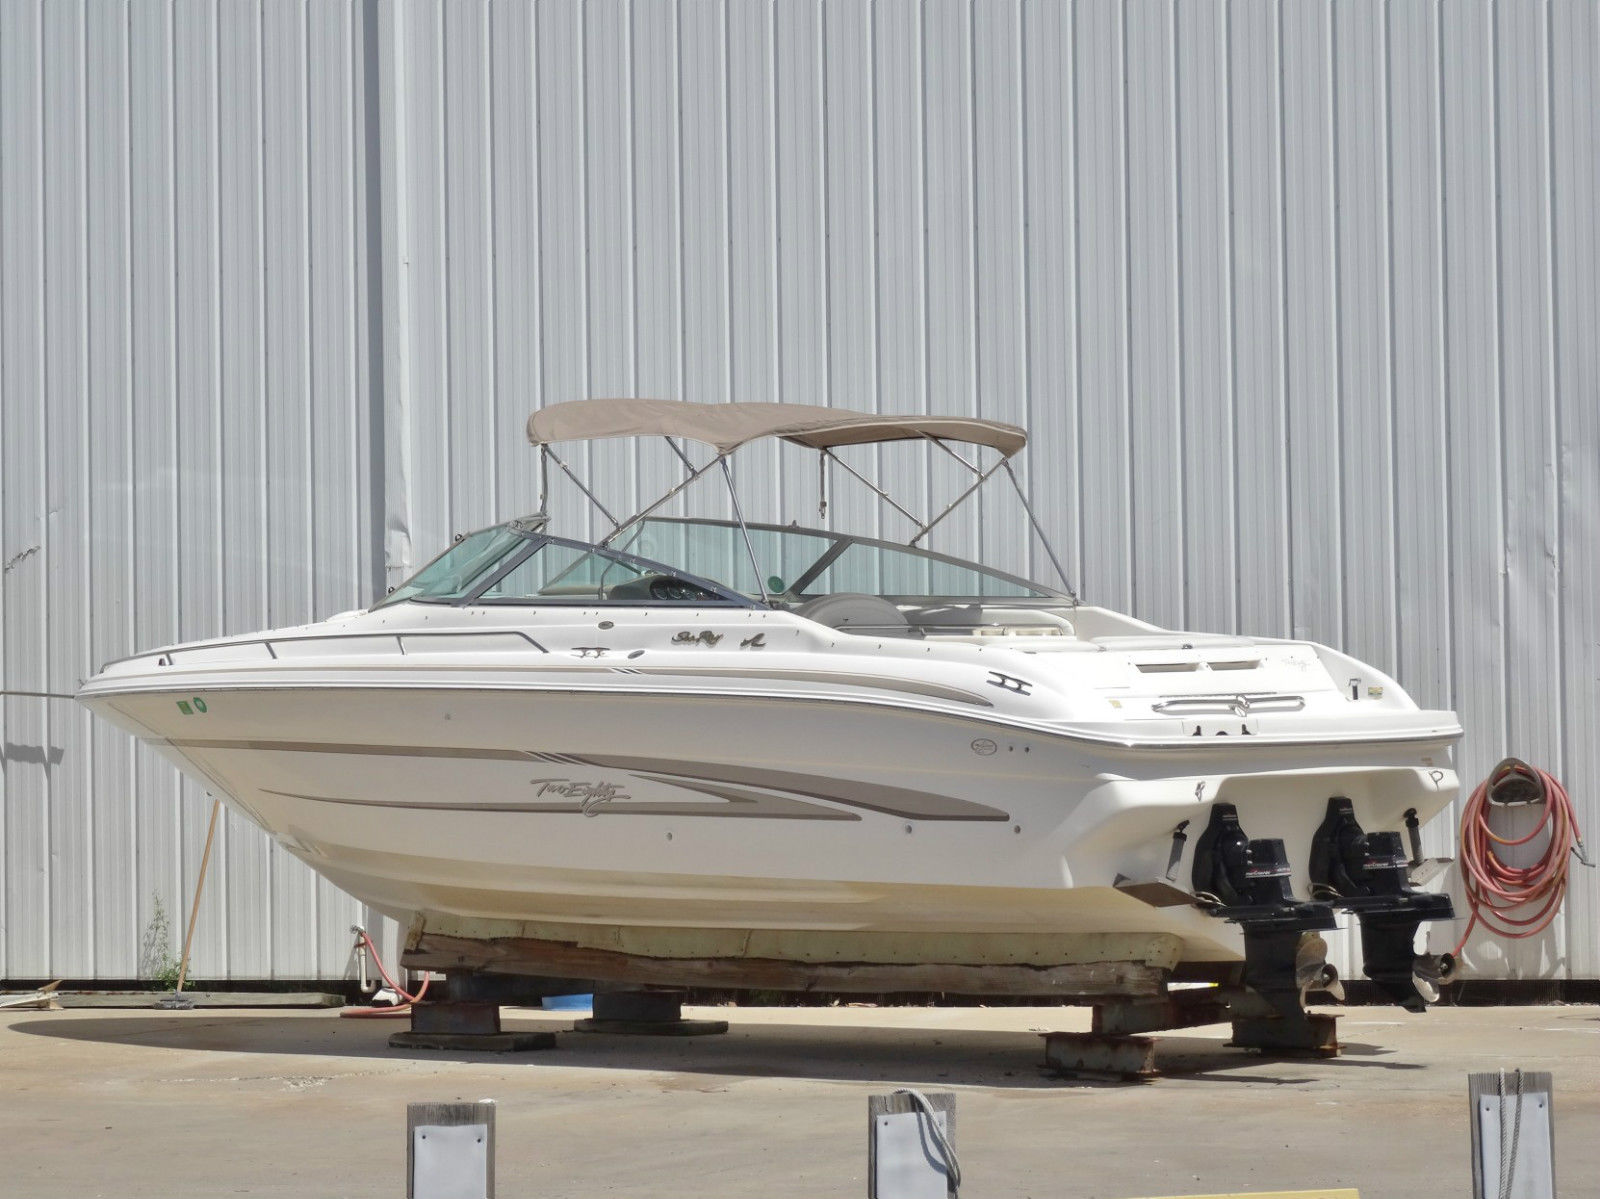 wholesaleingfla : 1998 Sea Ray 280 Bowrider Super Sport